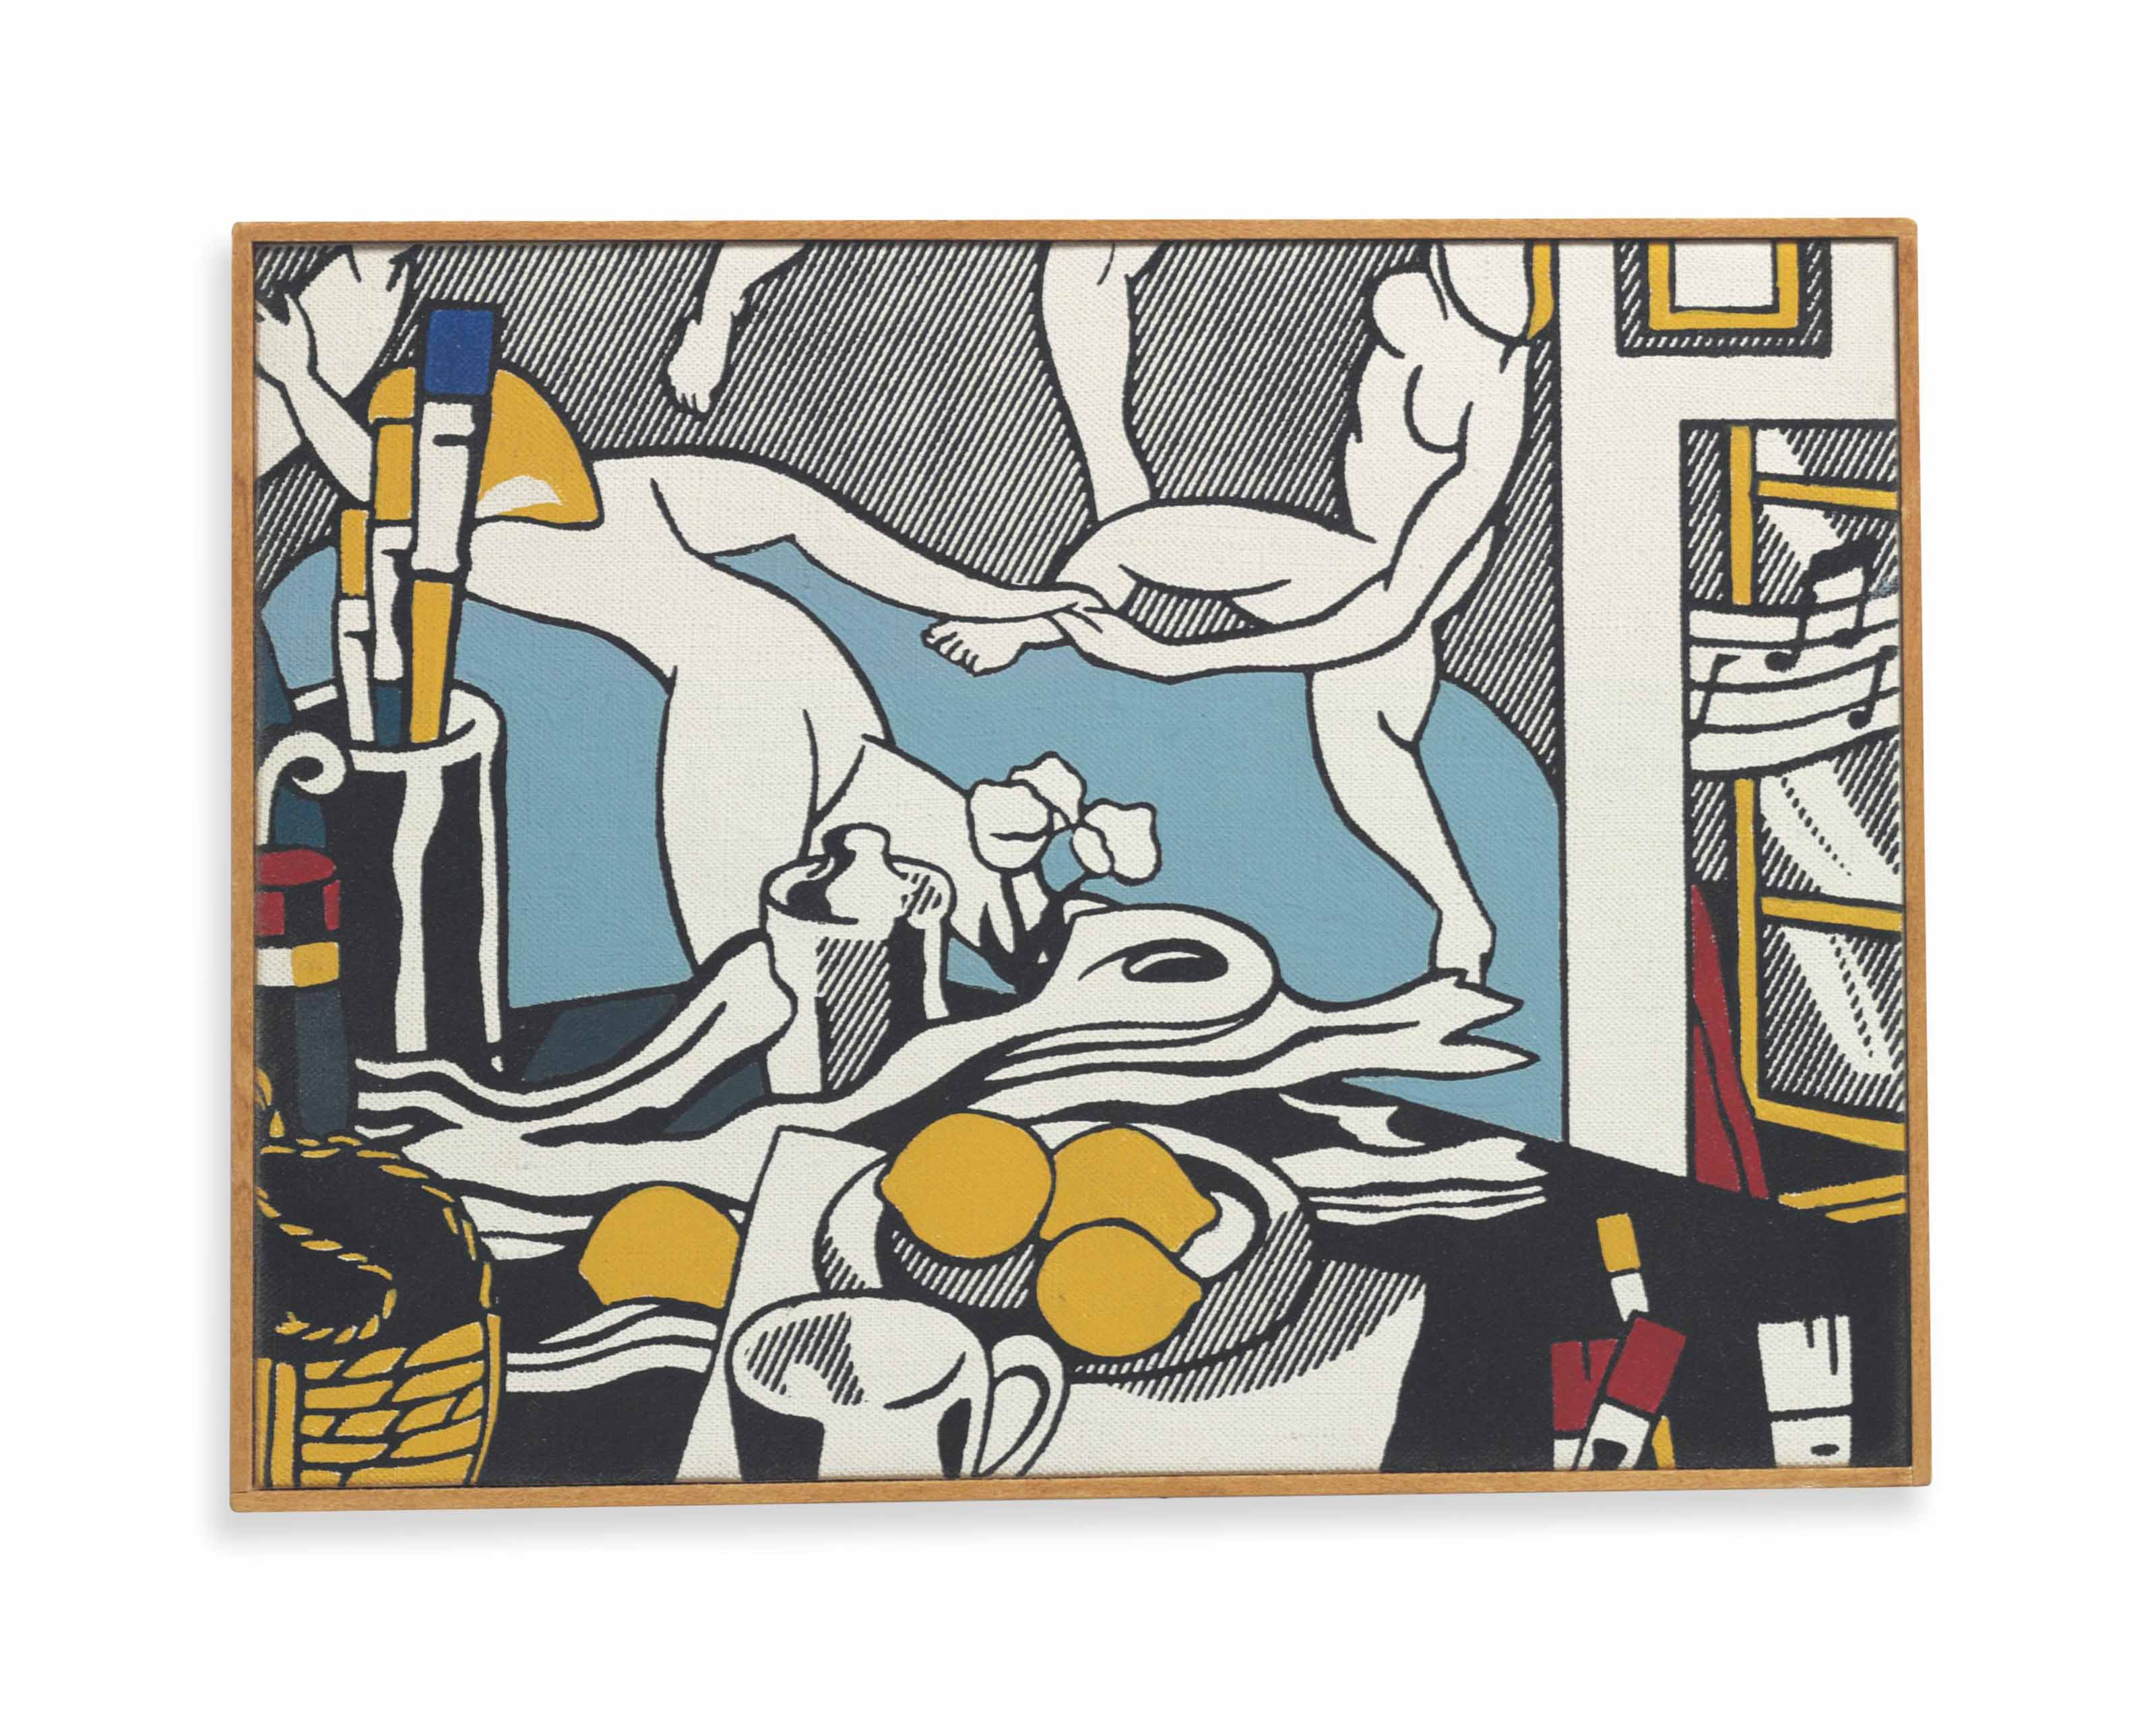 Lichtenstein, The Artist's Studio: The Dance, 1974